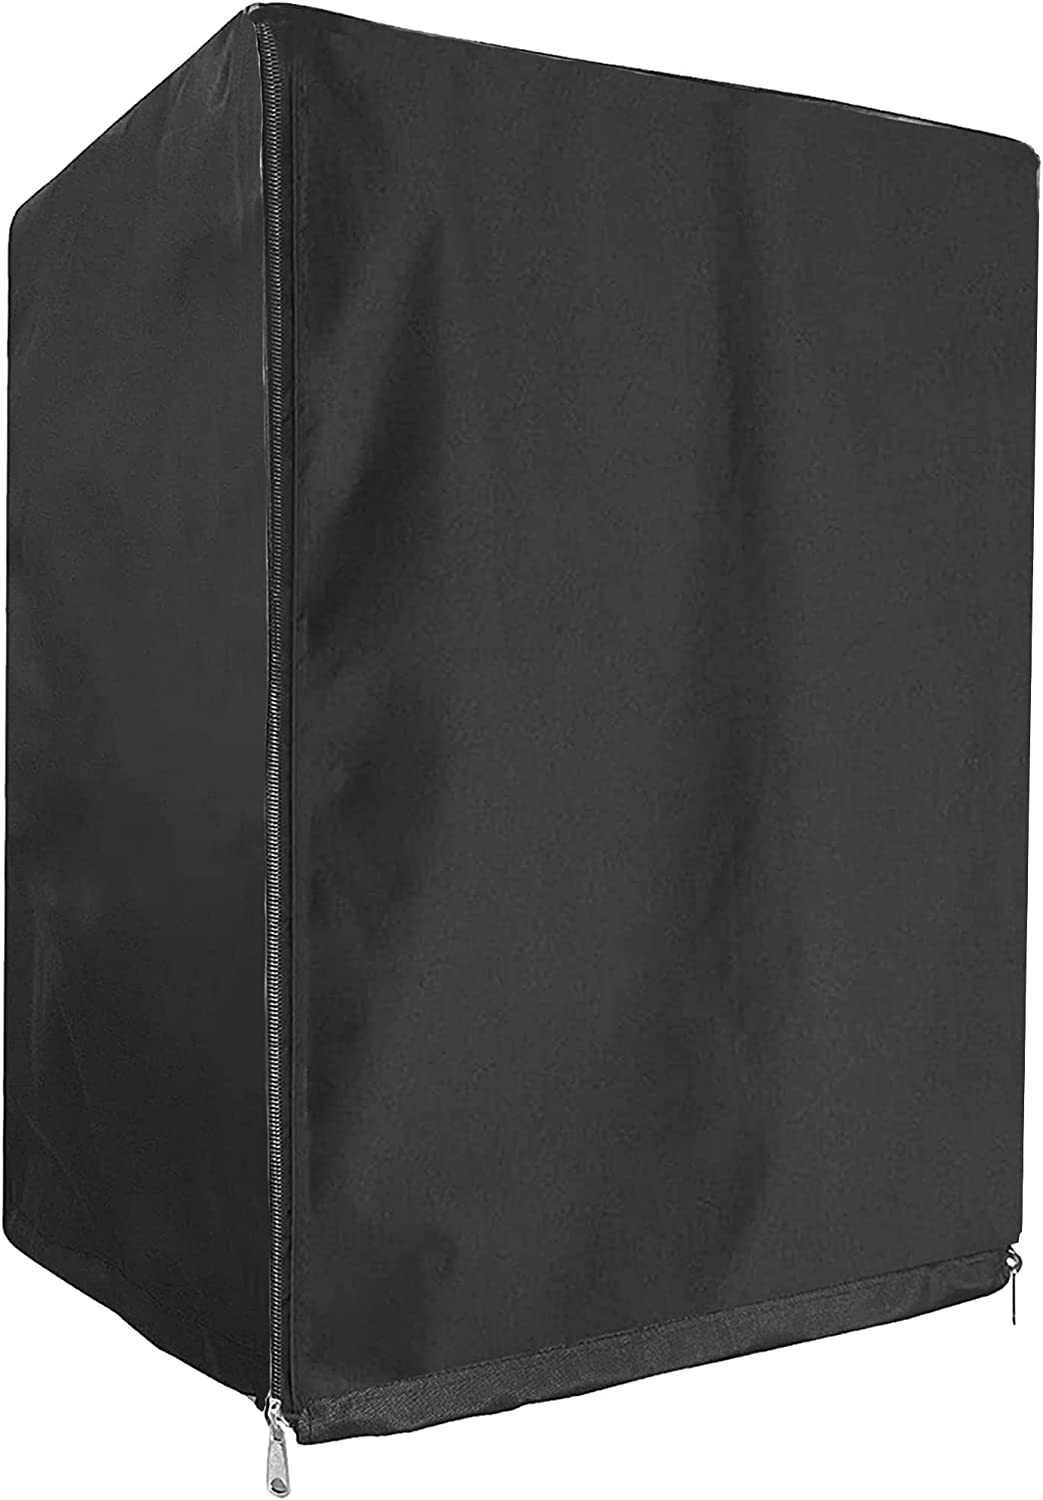 Max 65% OFF Safe Max 71% OFF Box Cover Dustproof M Protective Resistant Scratch